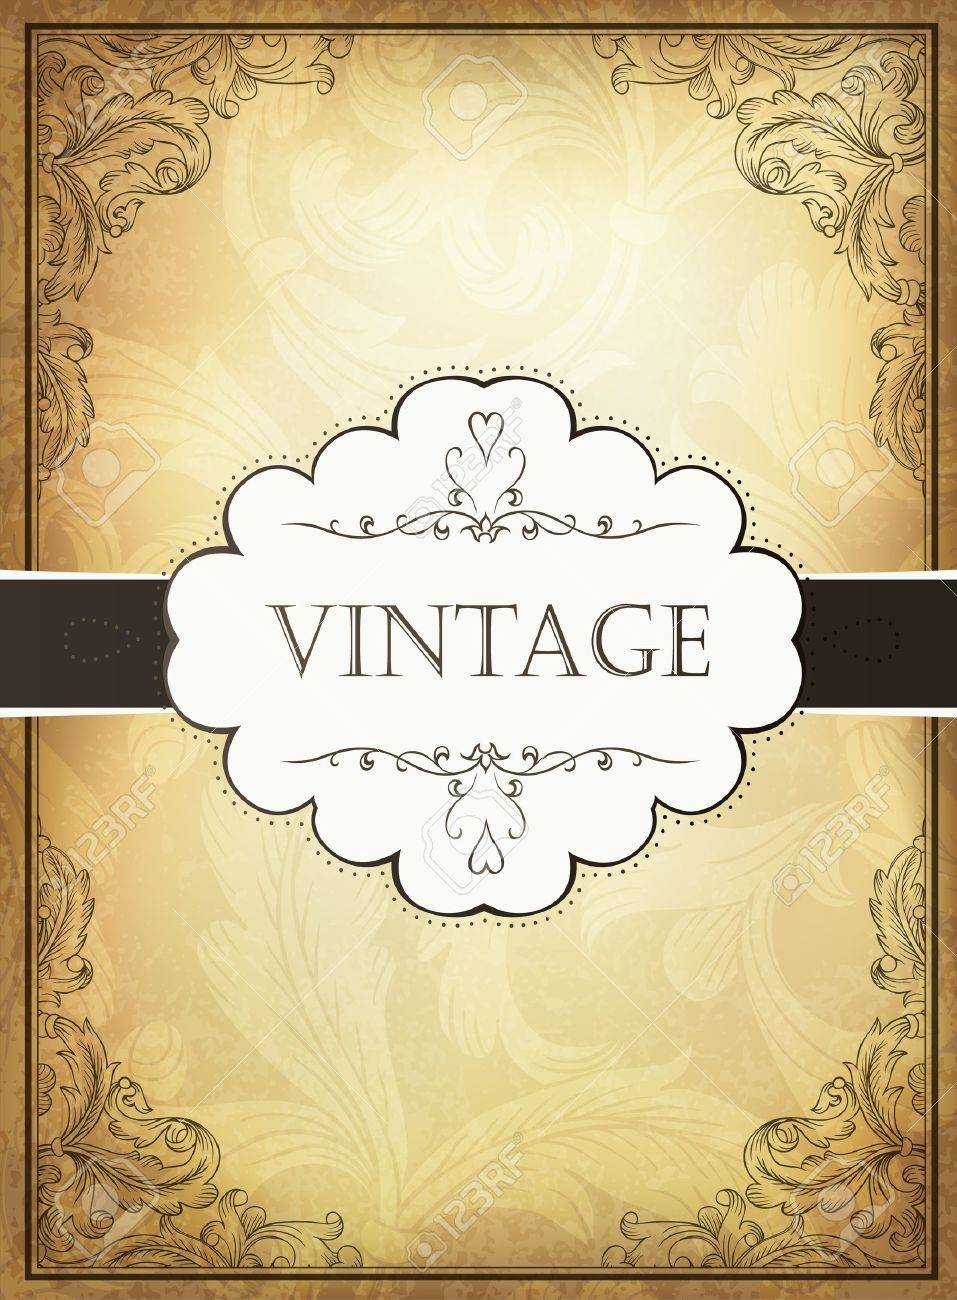 Vintage background with ornamental frame Stock Vector - 14889547